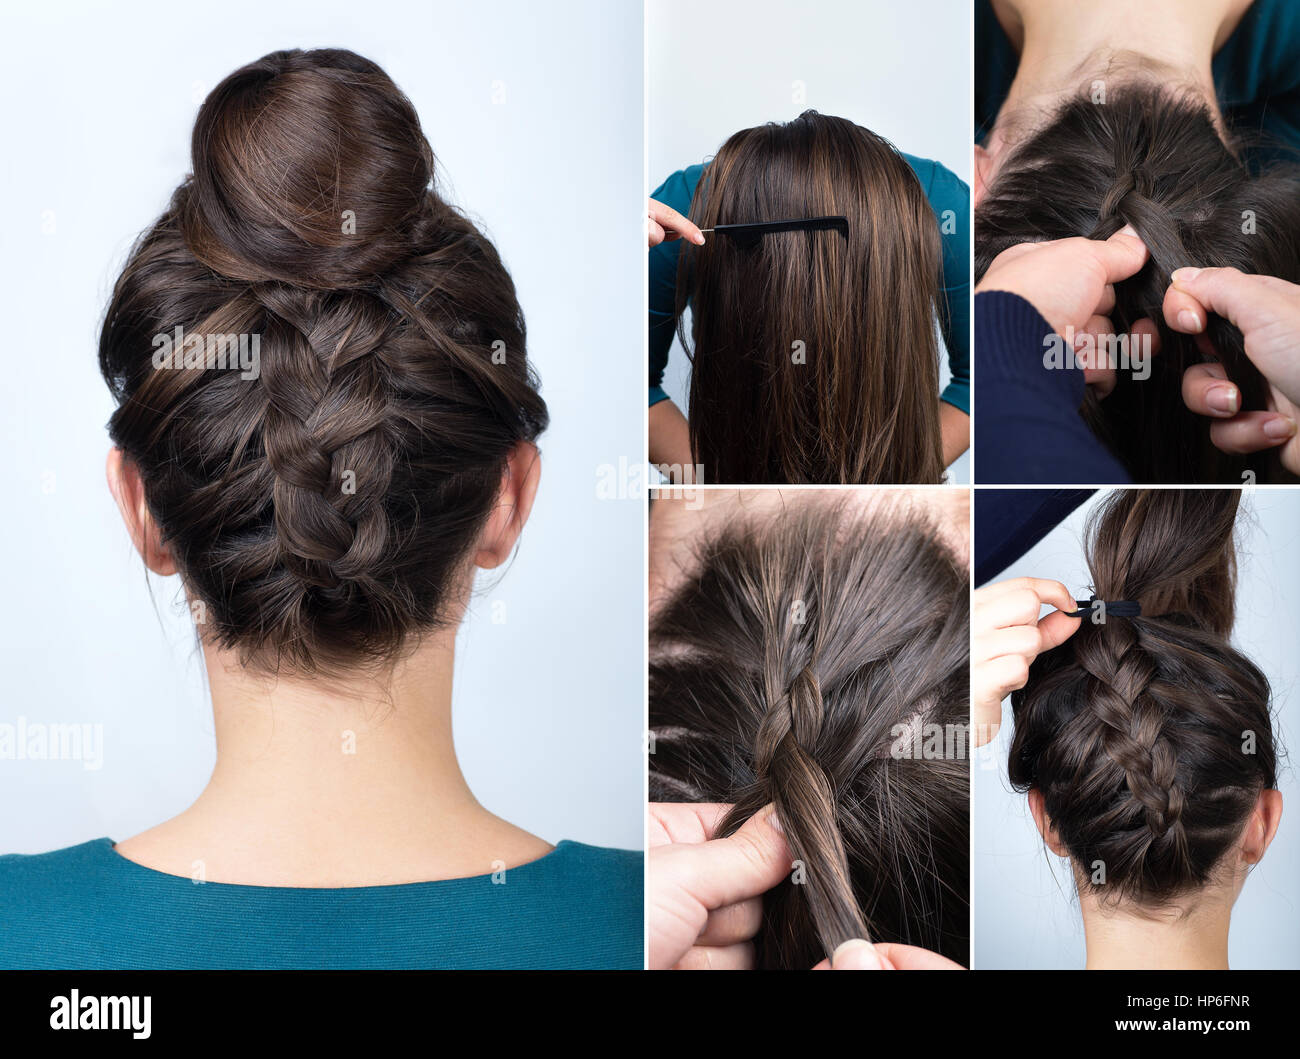 Modern Hairstyle Reverse Braided Bun. Hairstyle Tutorial For Long Hair.  Hairstyle. Tutorial. Upside Down French Braid With Bun. Braided Bun